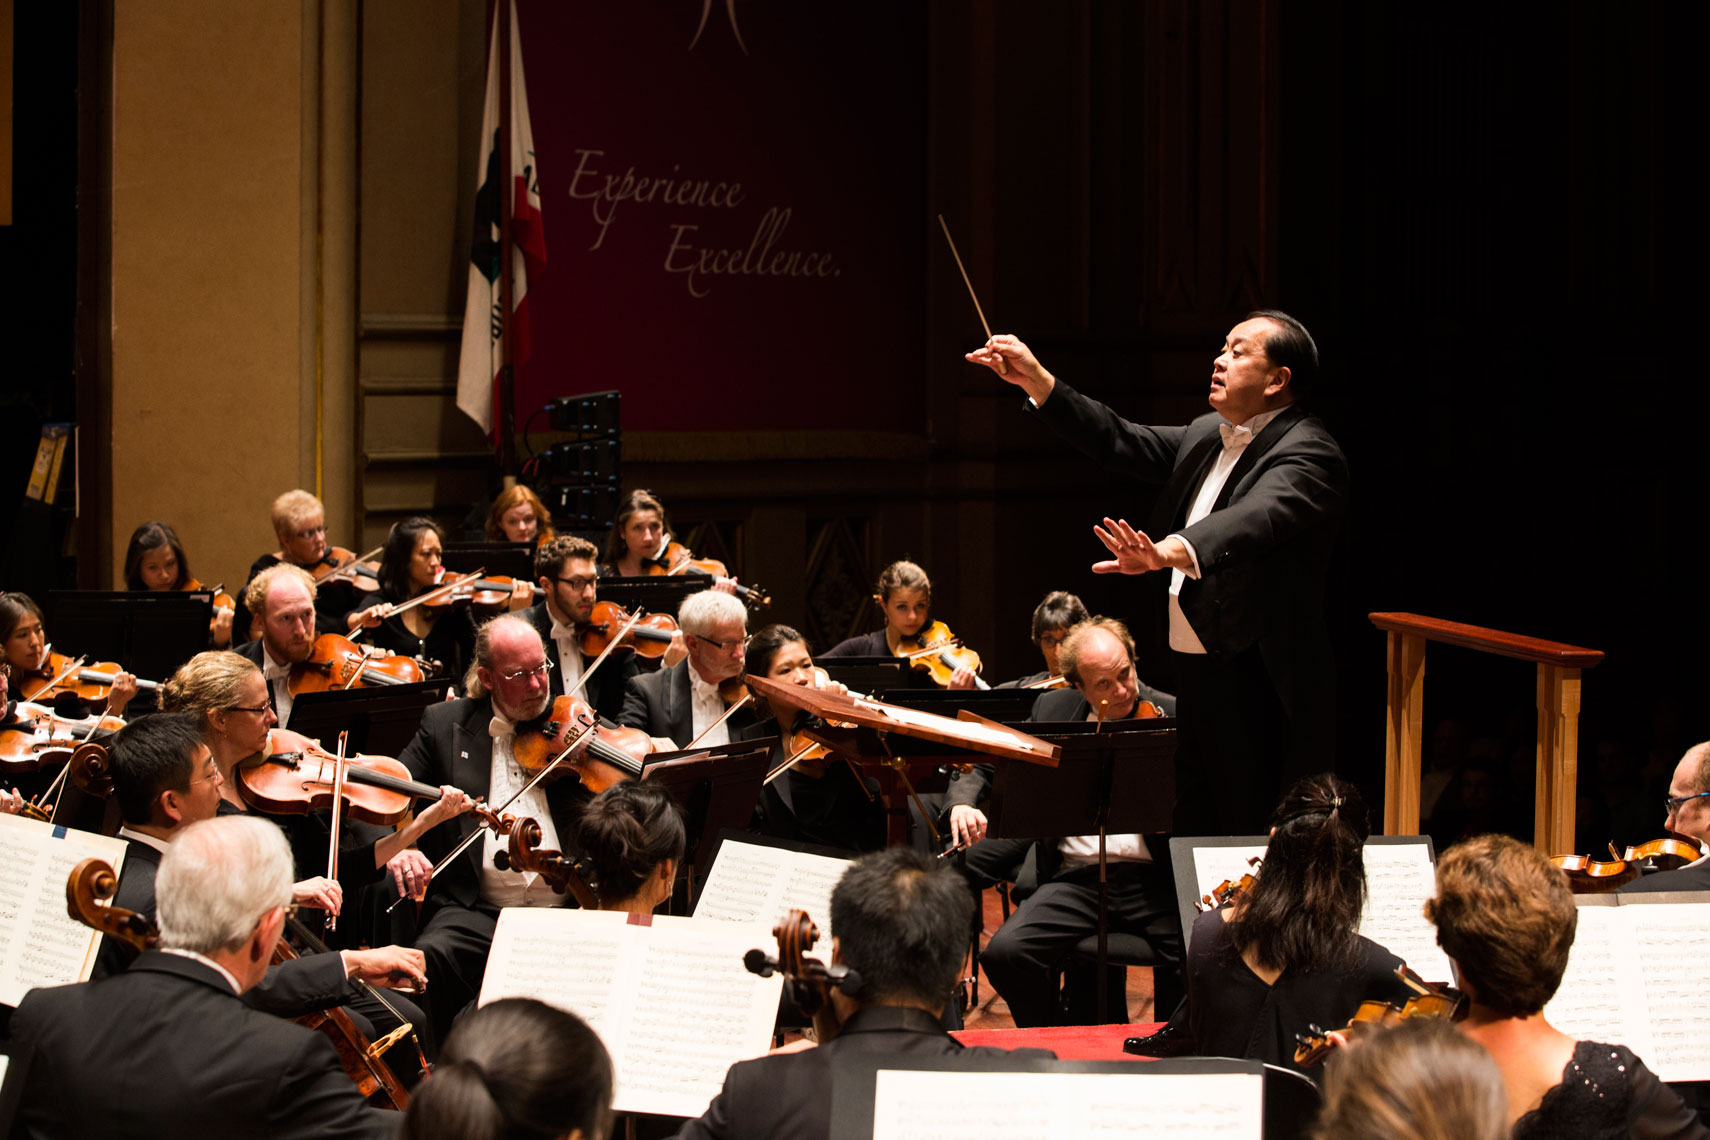 Advertising Photographers Los Angeles San Diego Symphony Orchestra